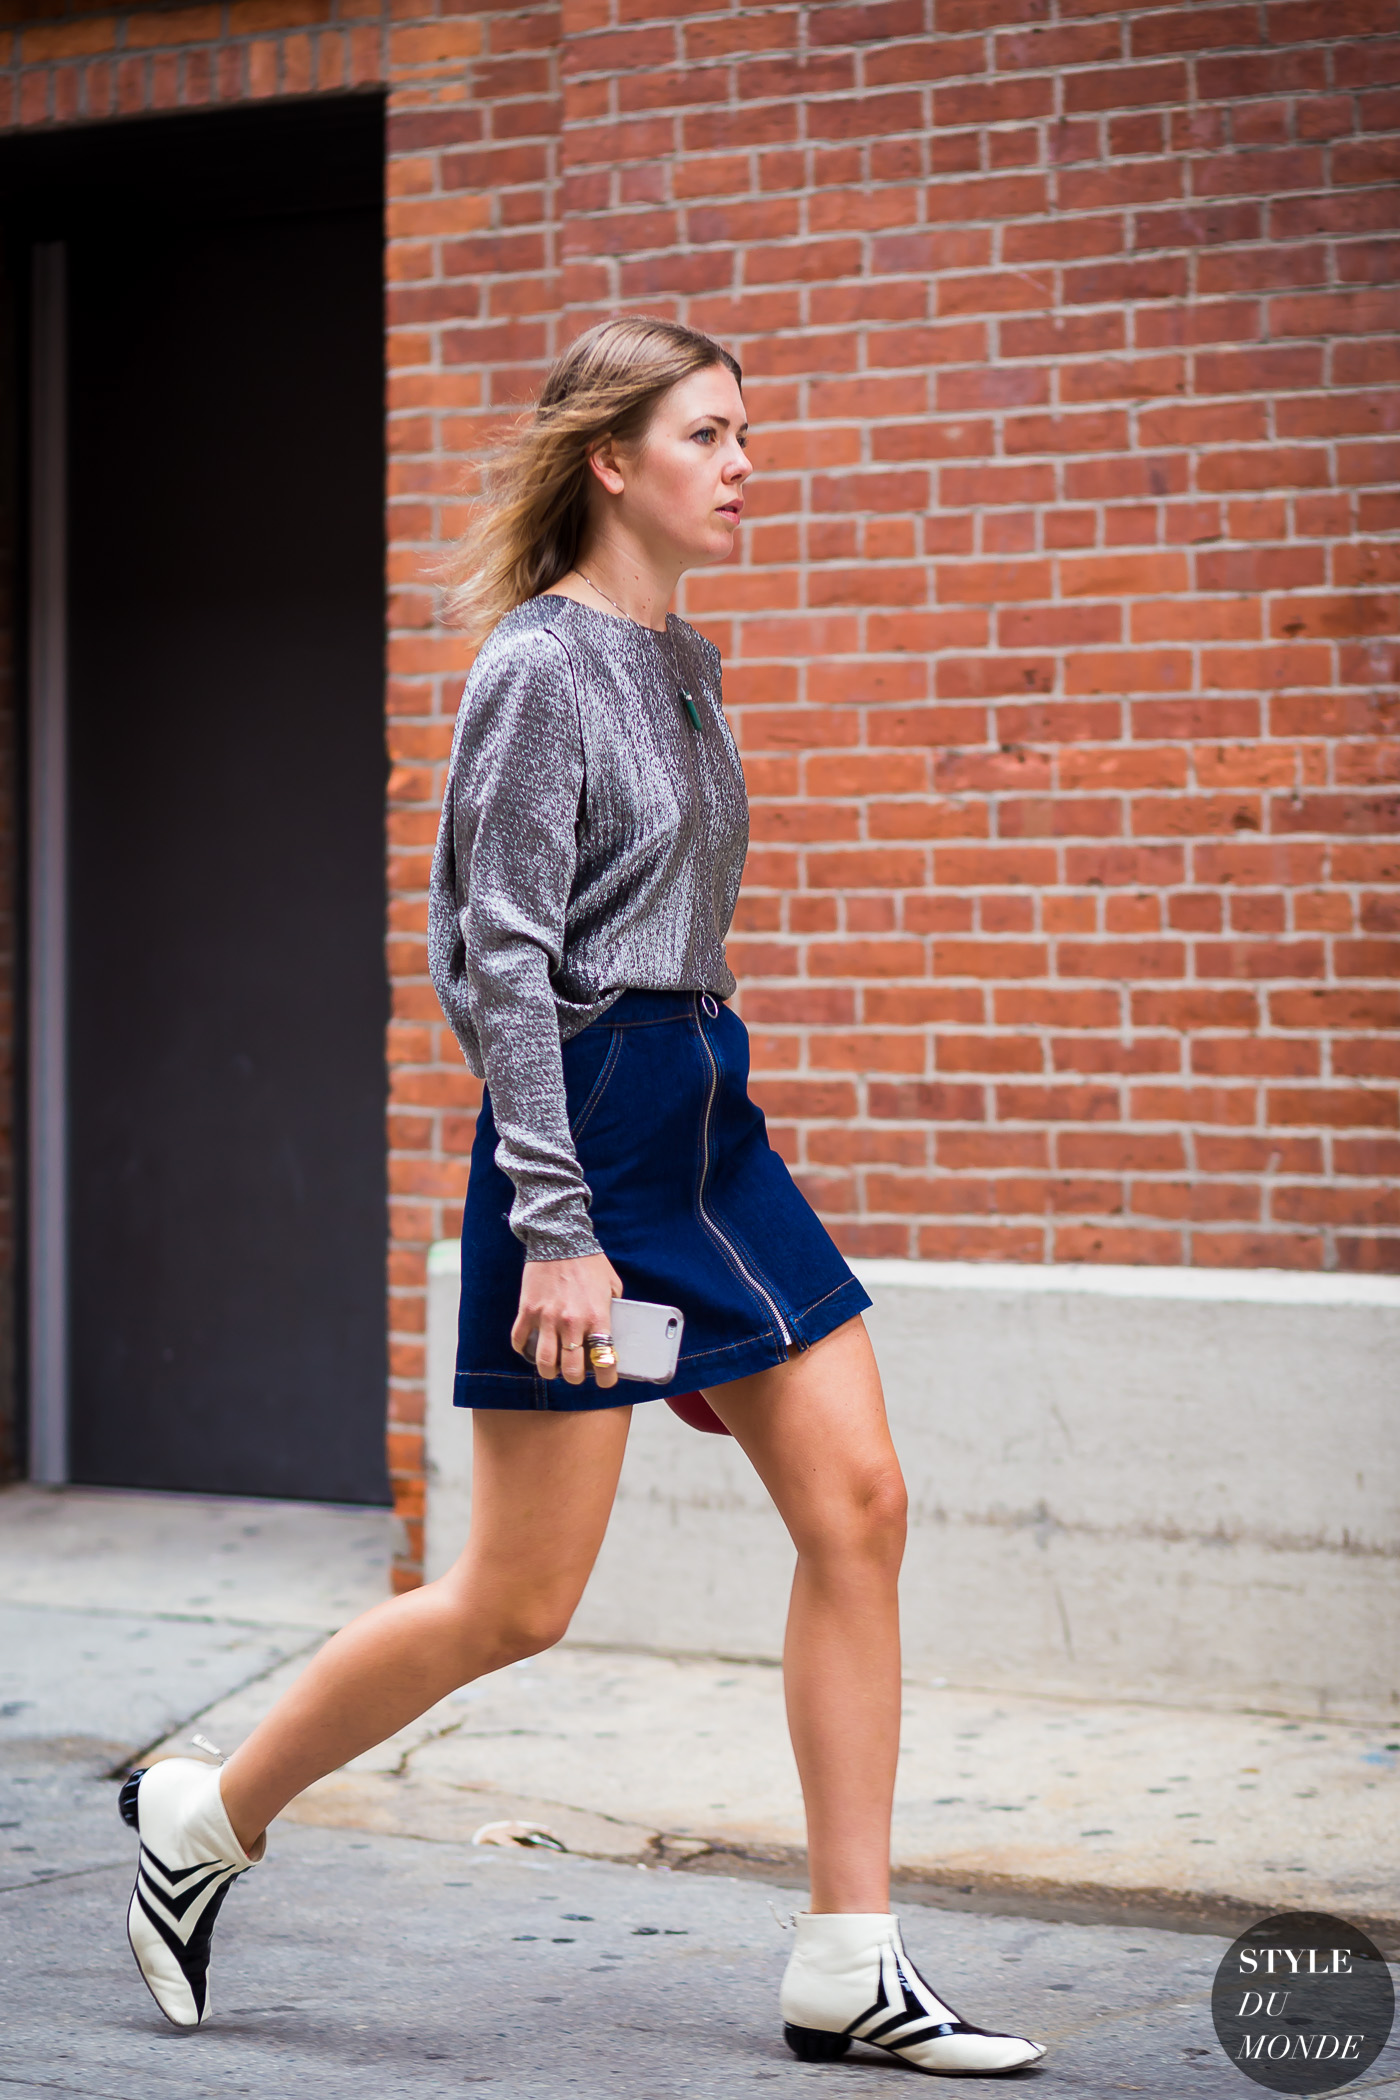 Megan Bowman Gray Street Style Street Fashion Streetsnaps by STYLEDUMONDE Street Style Fashion Photography